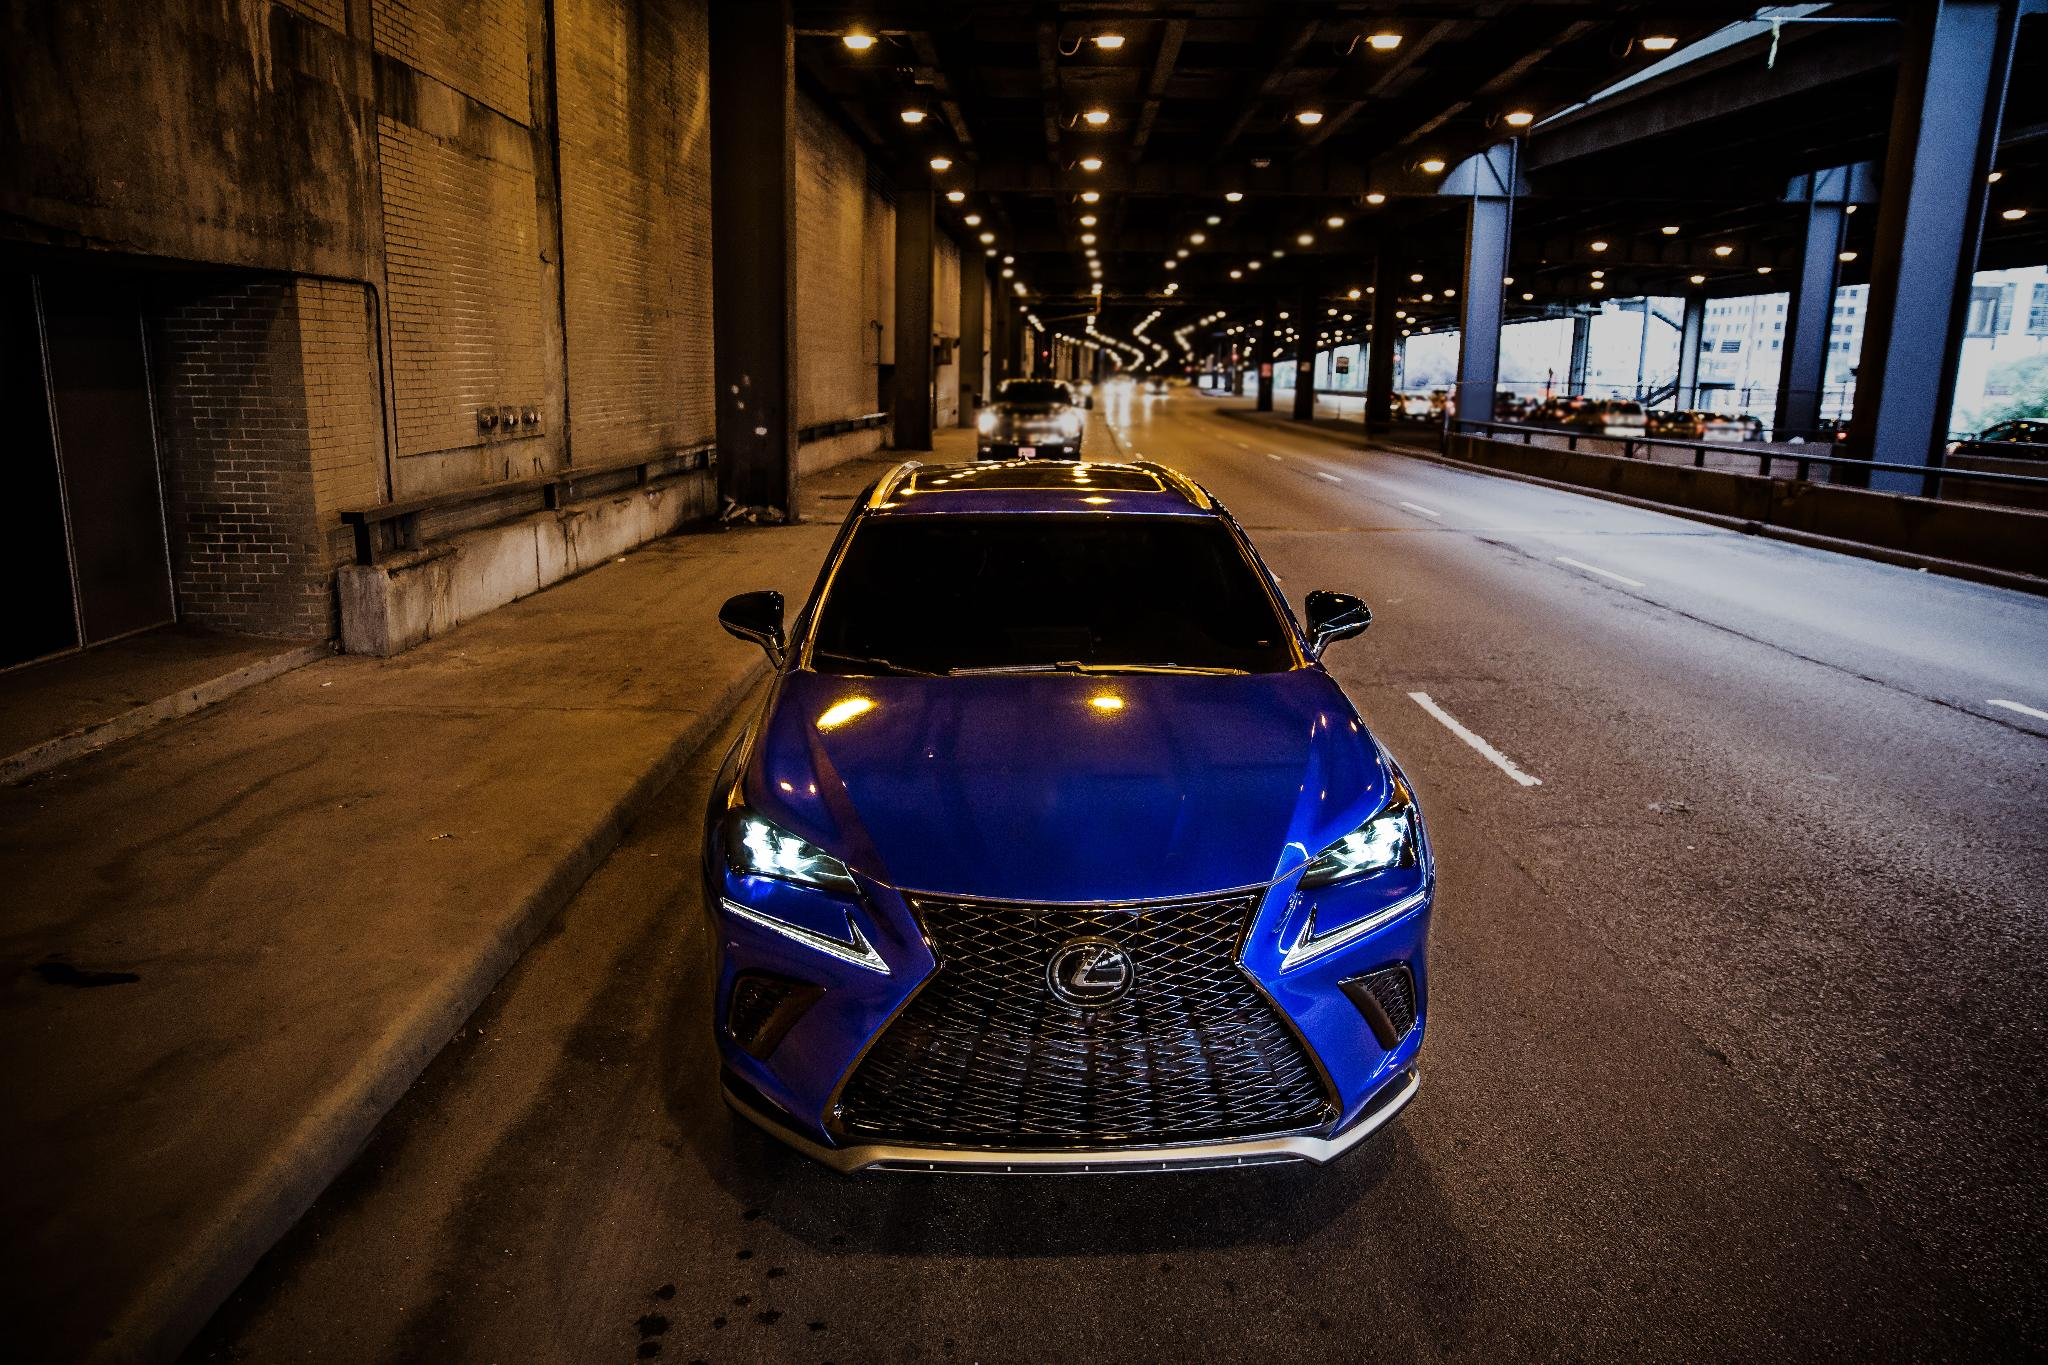 Lights. Camera. Action. #LexusNX F SPORT https://t.co/nd3ZawhOsF